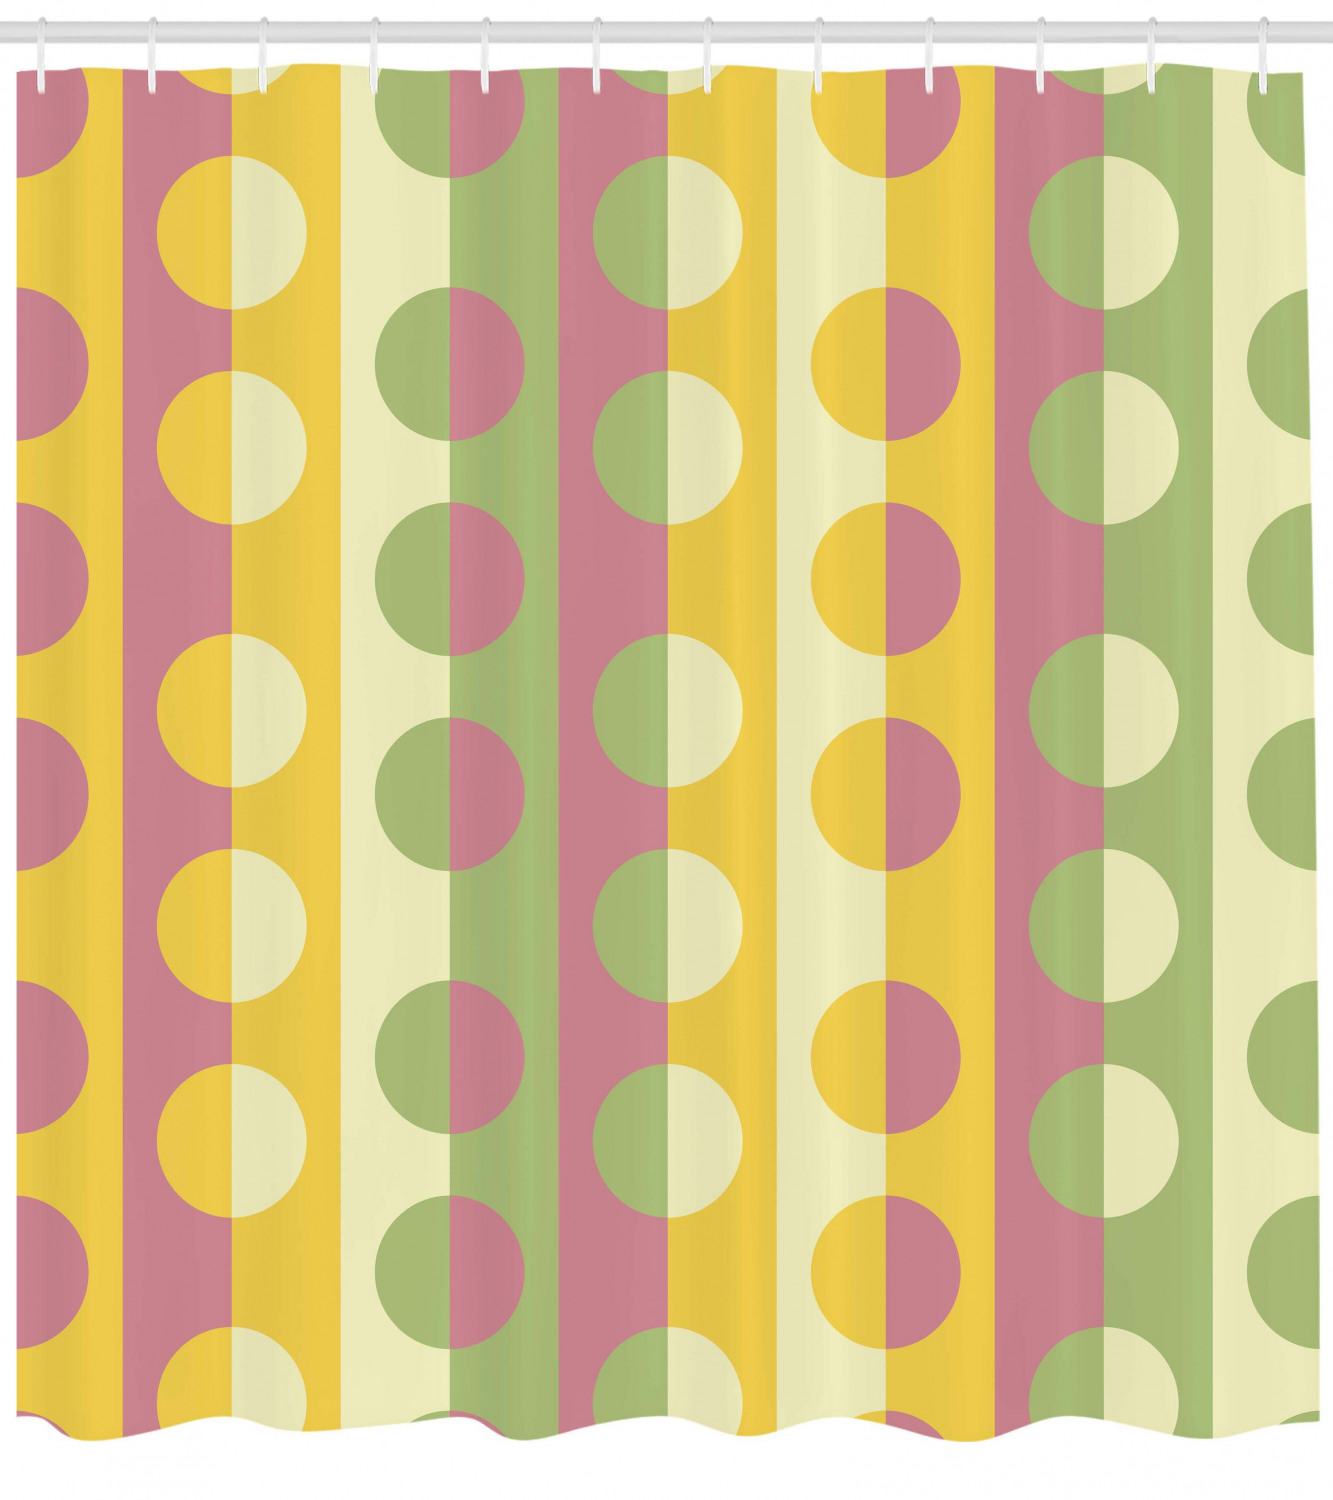 Abstract Shower Curtain Retro Textured Circle Geometric Shapes Over Striped Grid Background Soft Design Fabric Bathroom Set With Hooks Multicolor